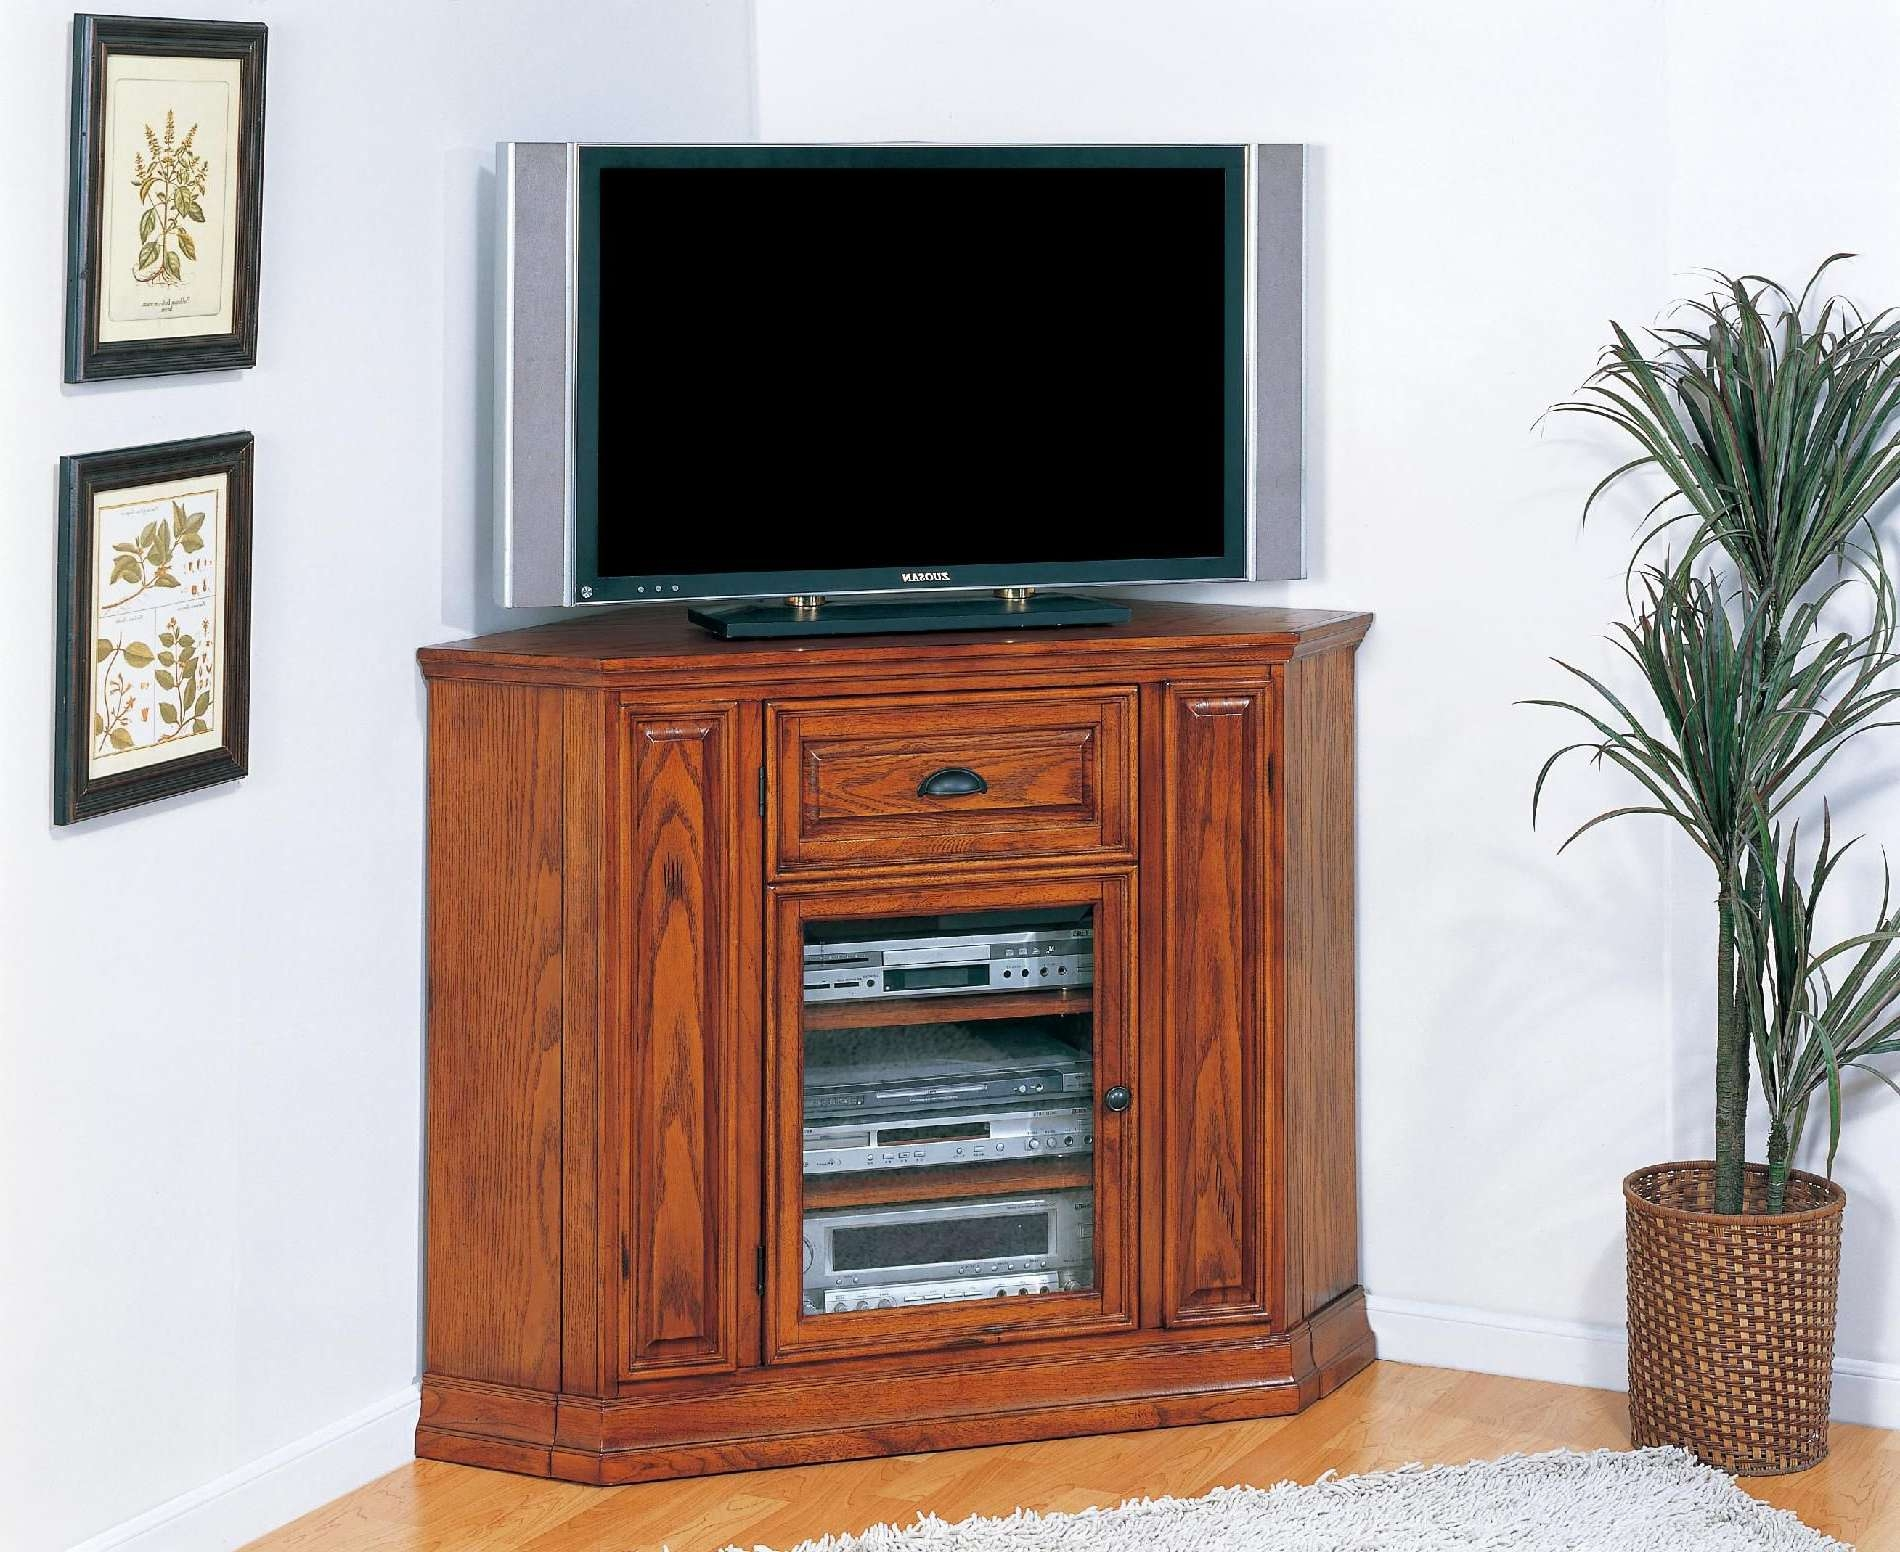 Tv Stand : Tall Narrow Tv Stands For Flat Screens And Standstall Within Tall Skinny Tv Stands (View 6 of 15)